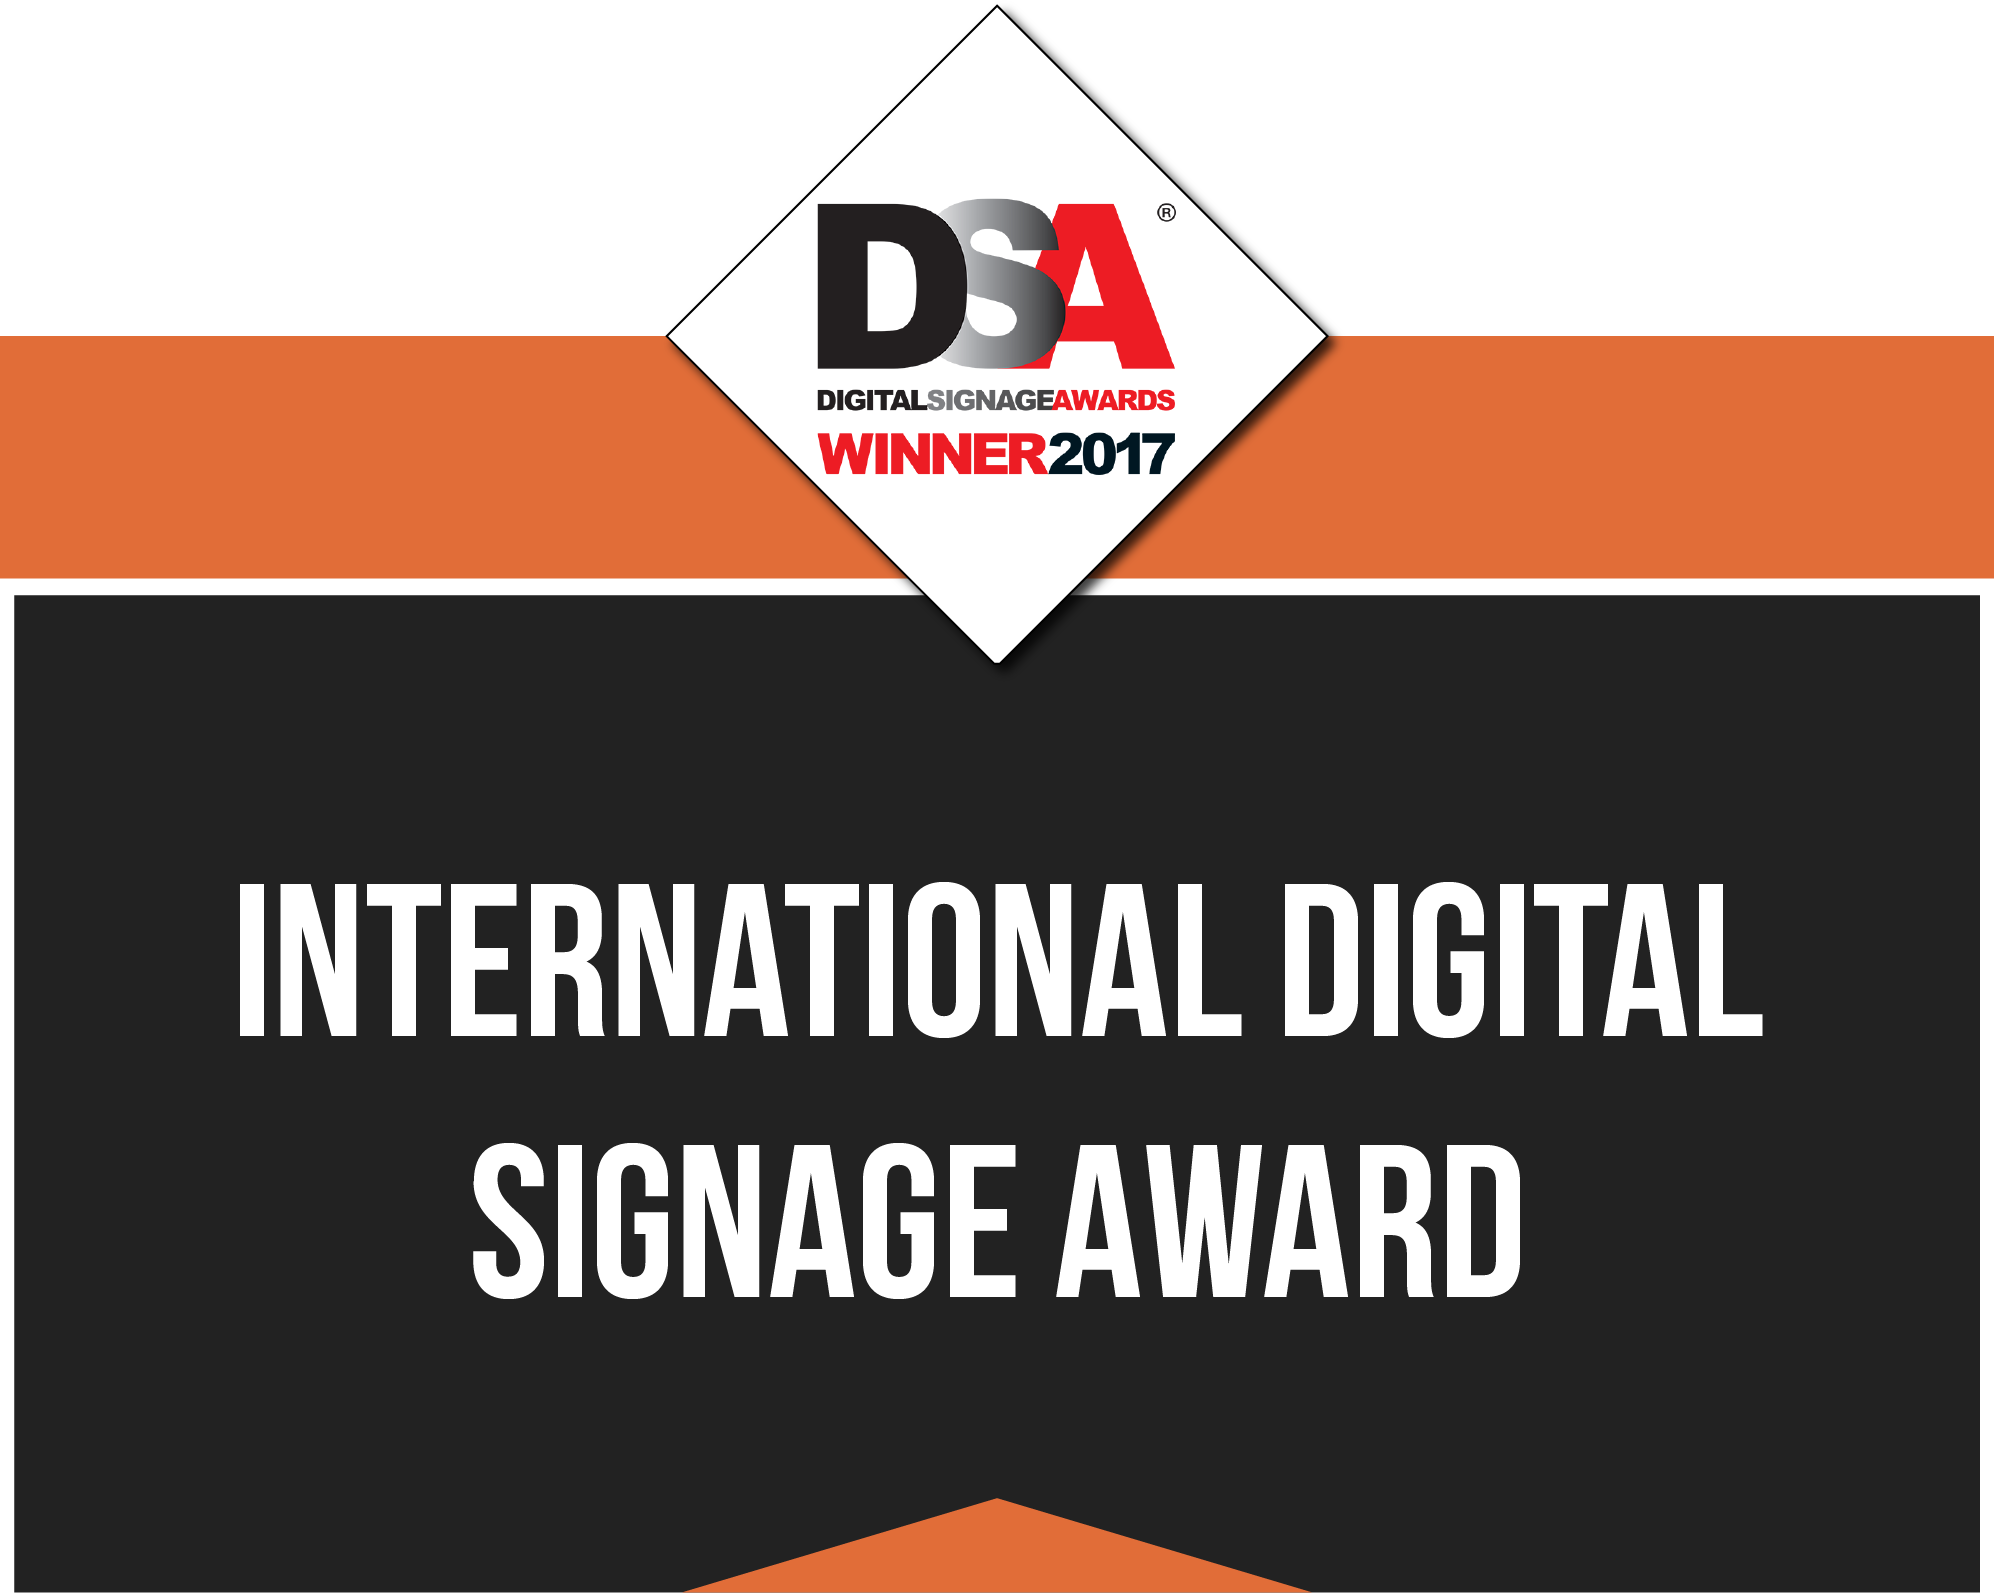 Award Banner for International Digital Signage Award